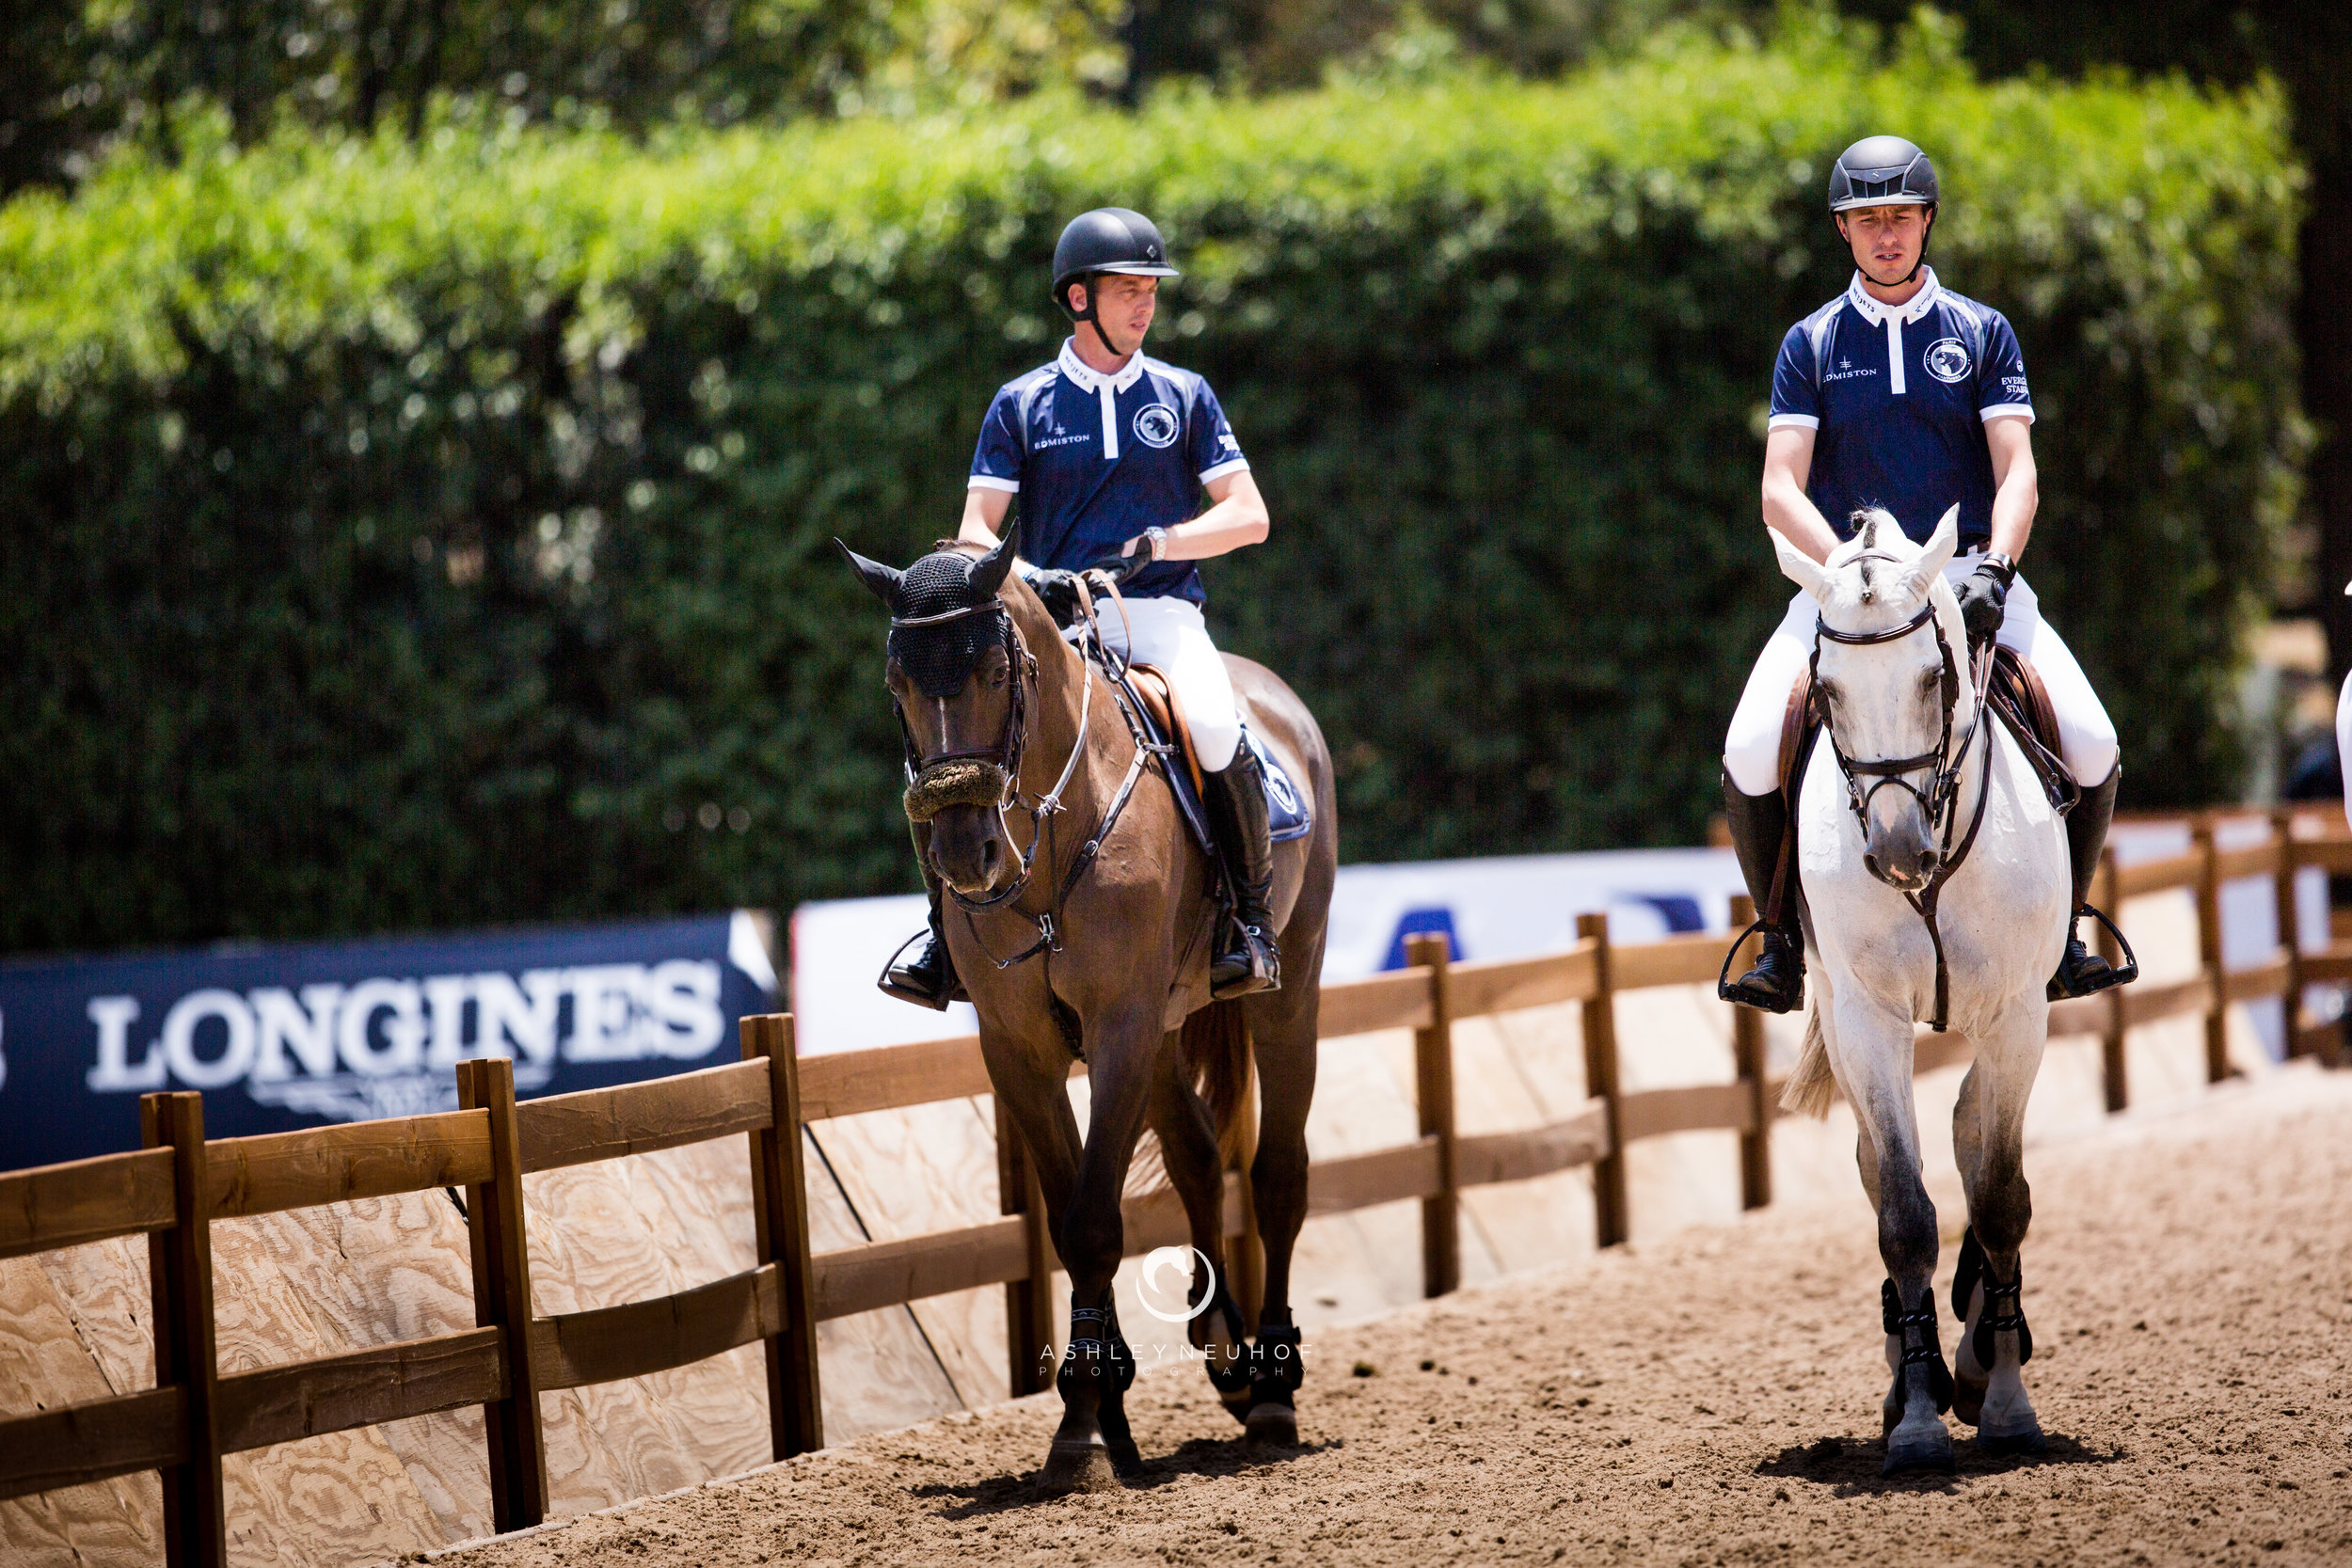 Harrie Smolders and Don VHP Z N.O.P. and Gregory Wathelet and Mjt Nevados S at Global Champions League of Mexico City 2019. Photo by Ashley Neuhof Photography.